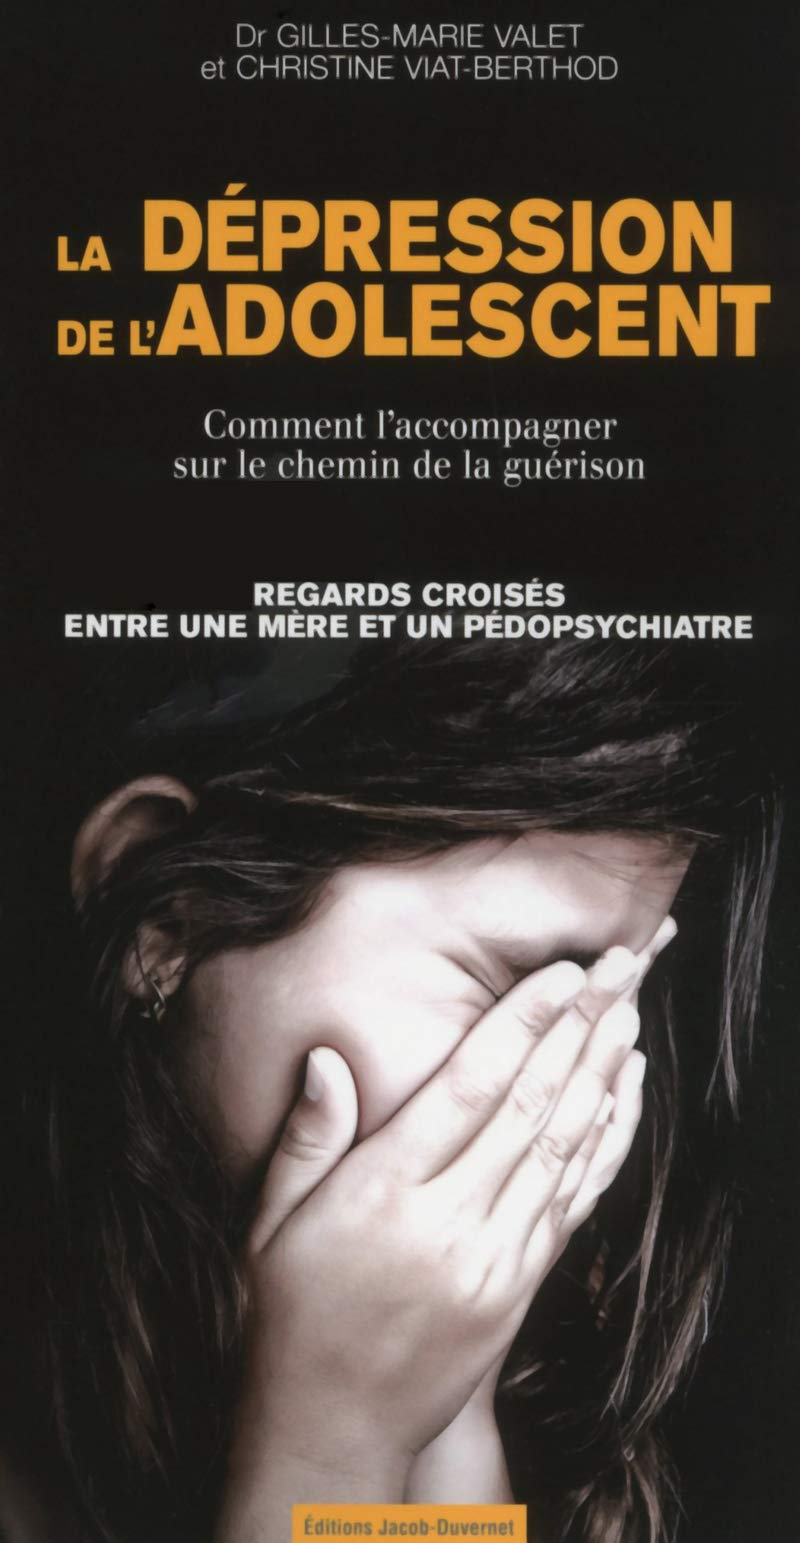 citations sur les rencontres adolescentes